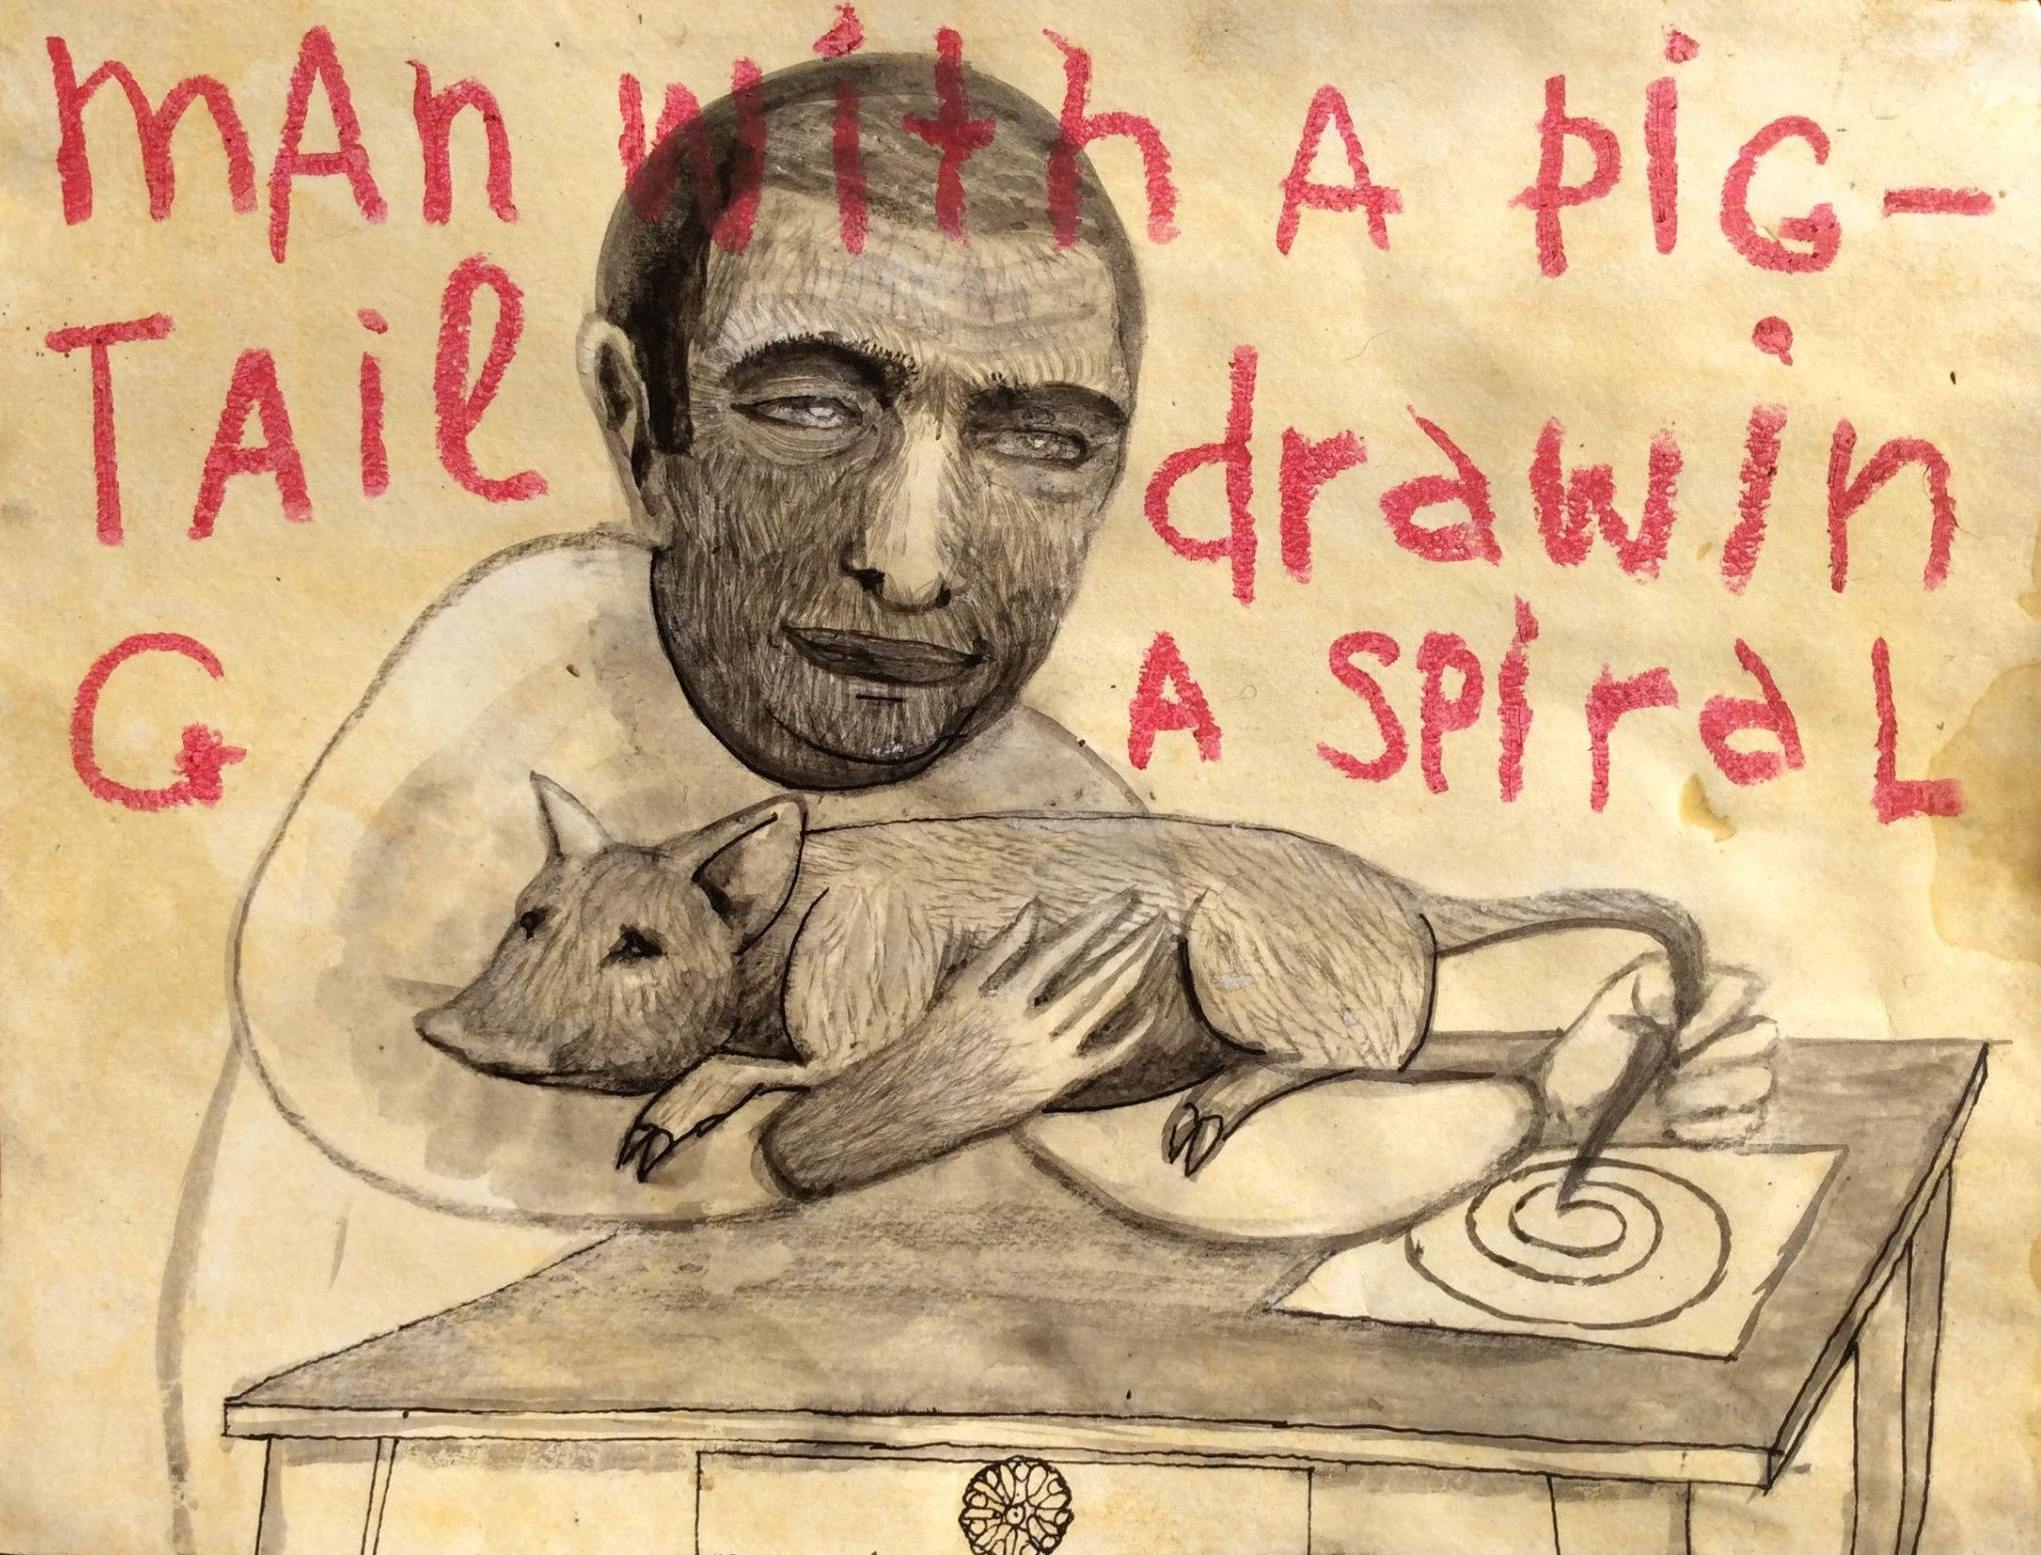 man with a pig tail drawing a spiral